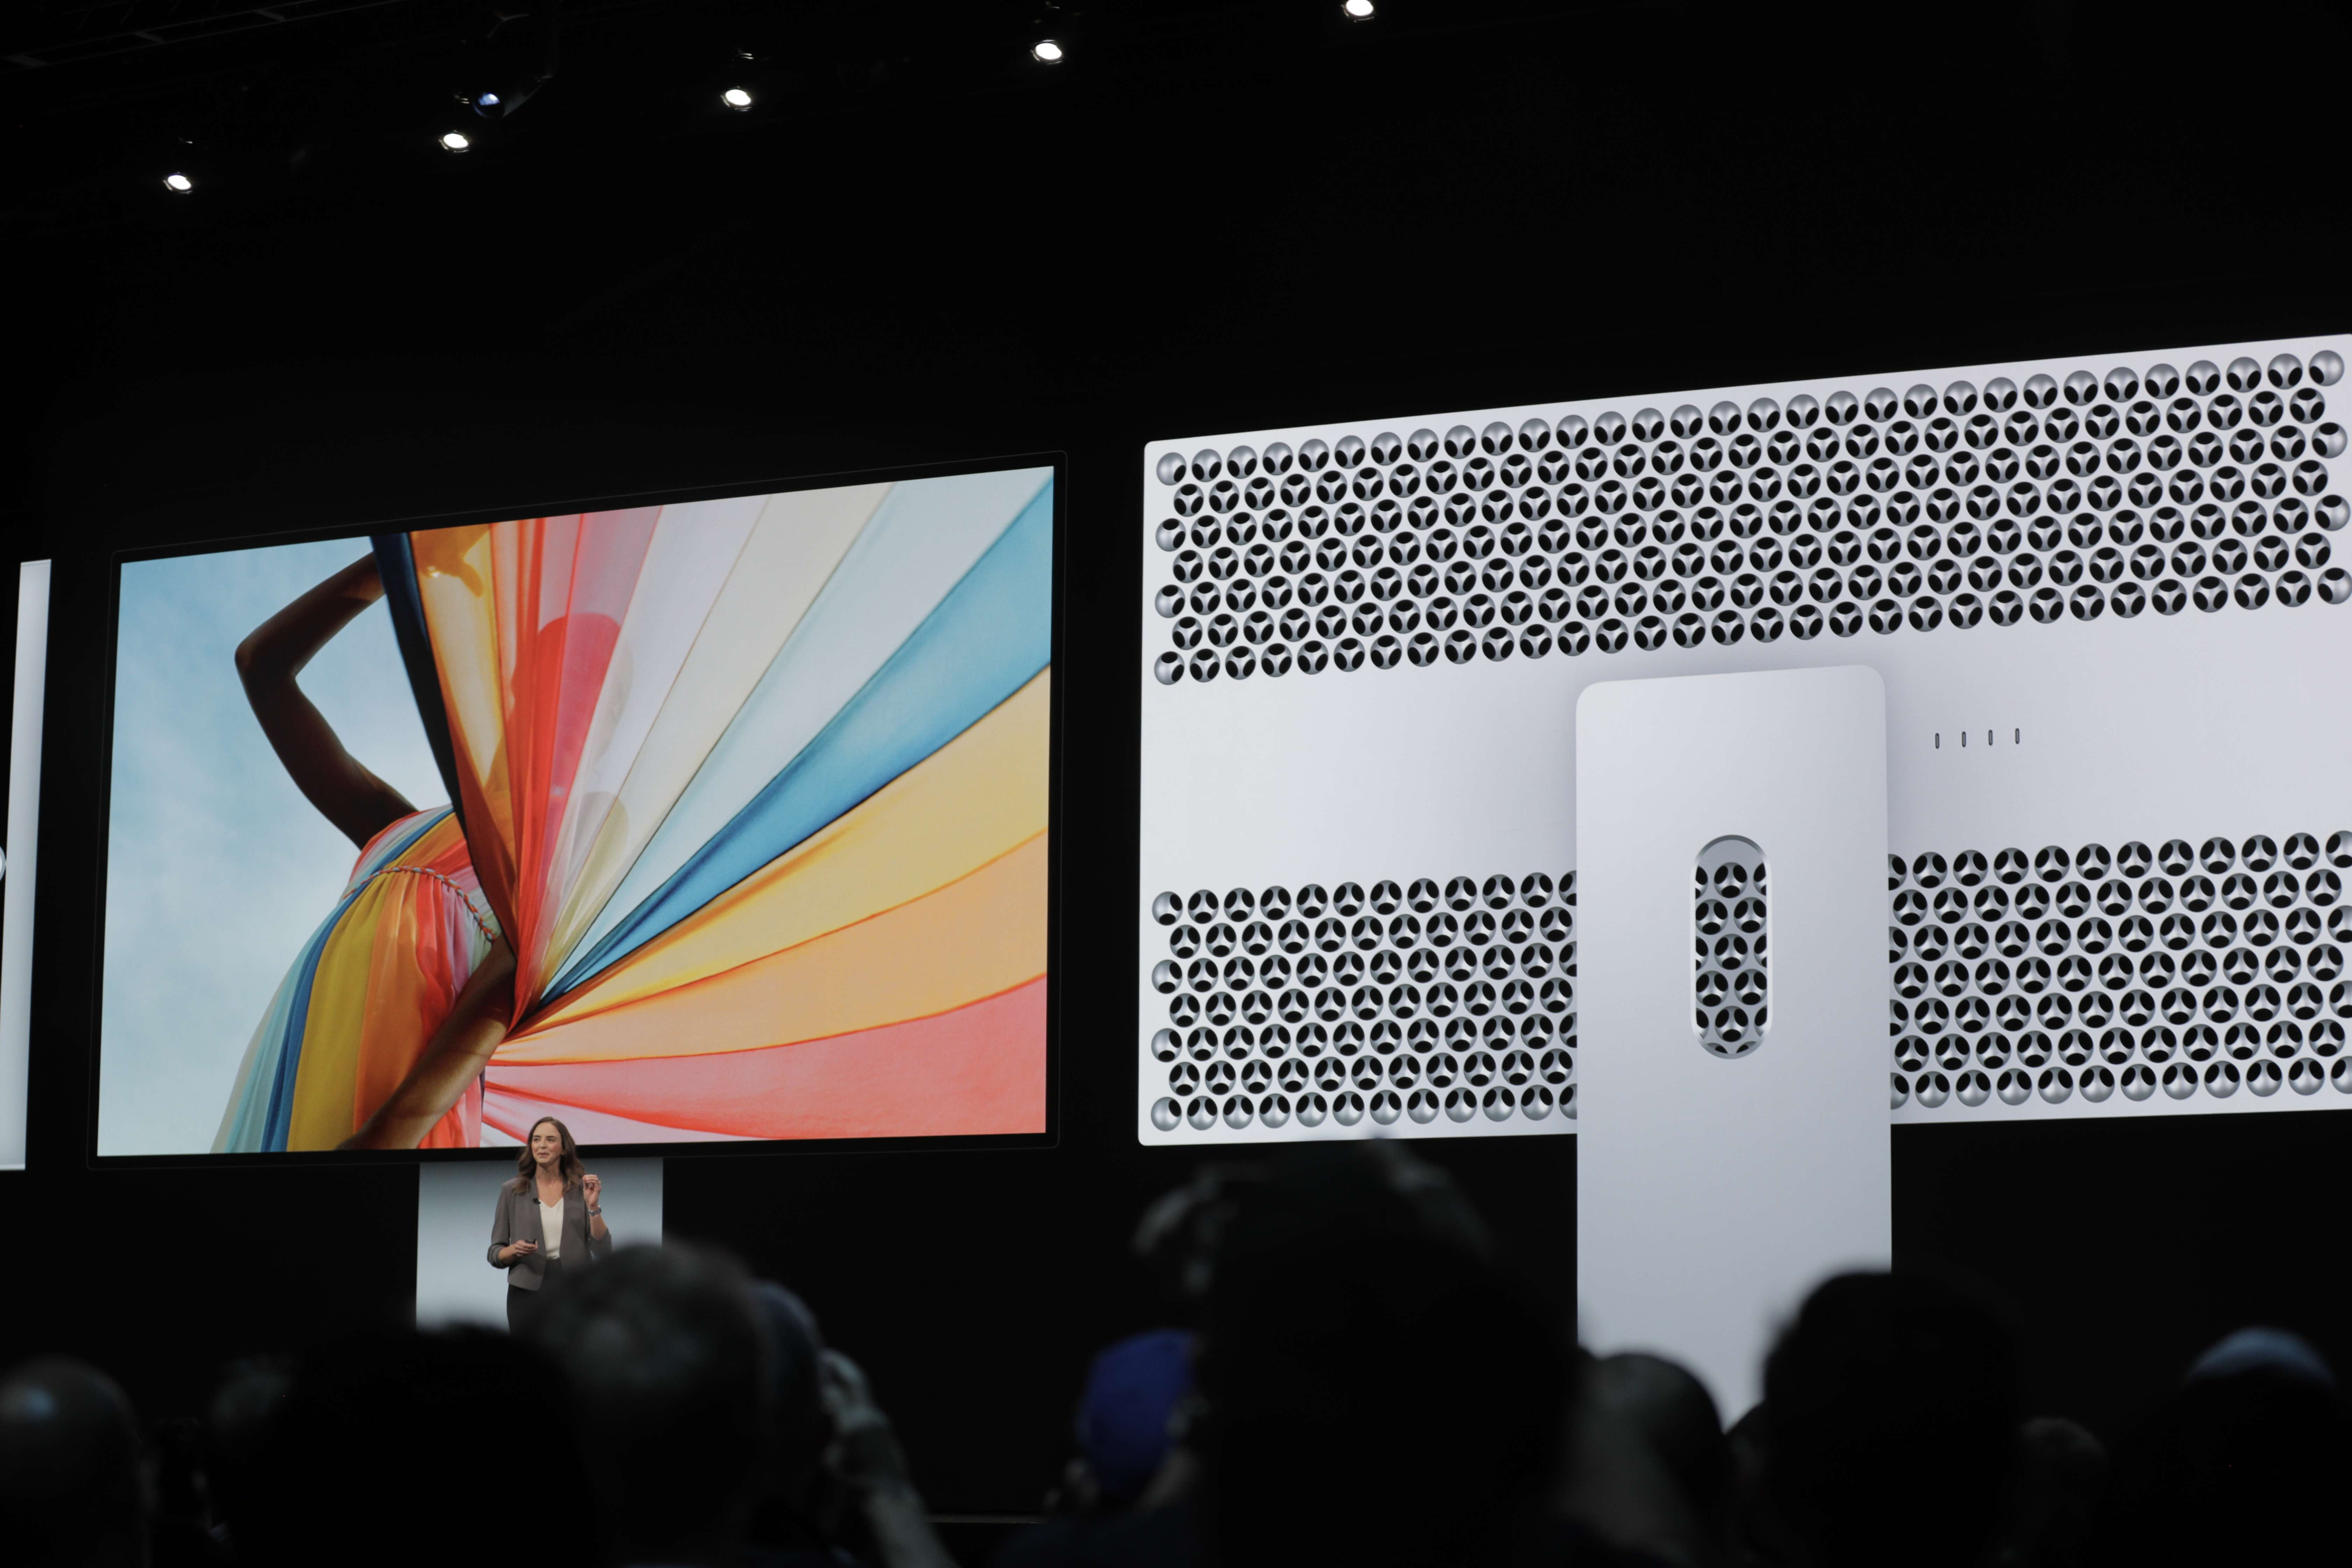 Here's everything Apple just announced at the 2019 WWDC